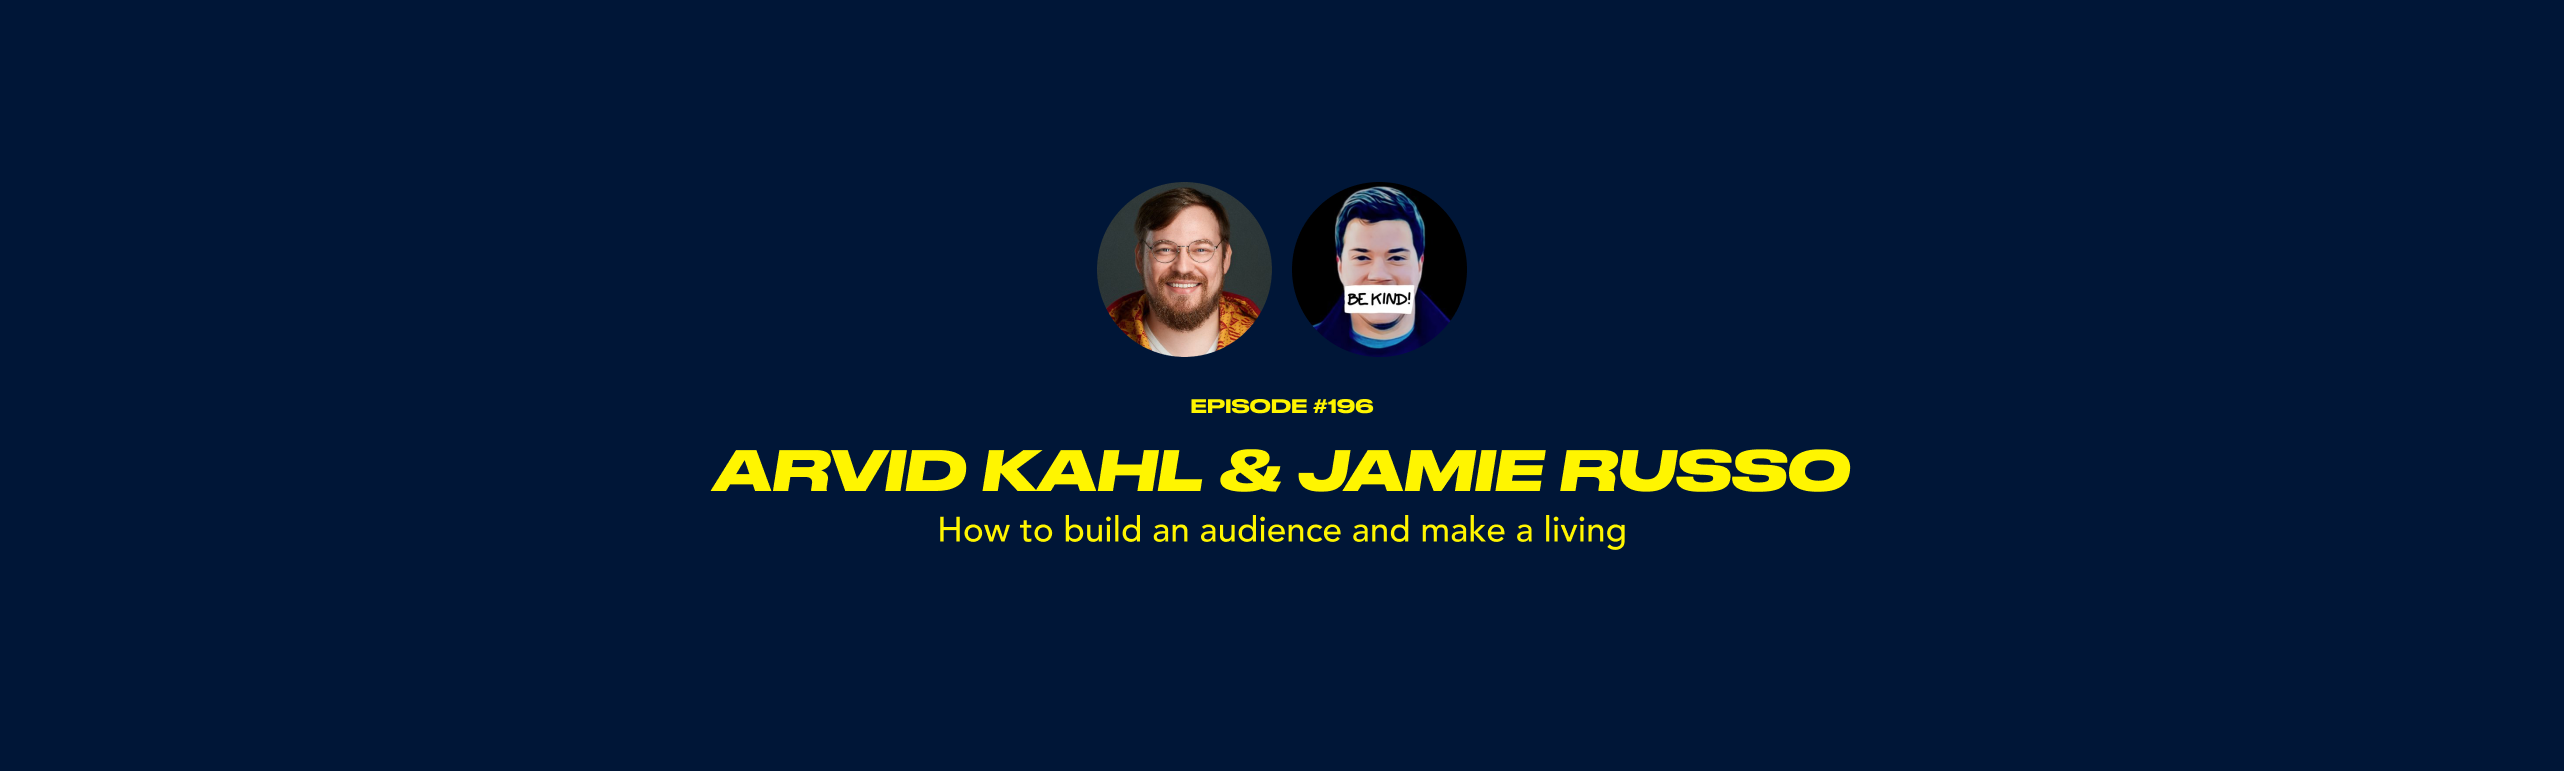 Arvid Kahl & Jamie Russo - How to build an audience and make a living